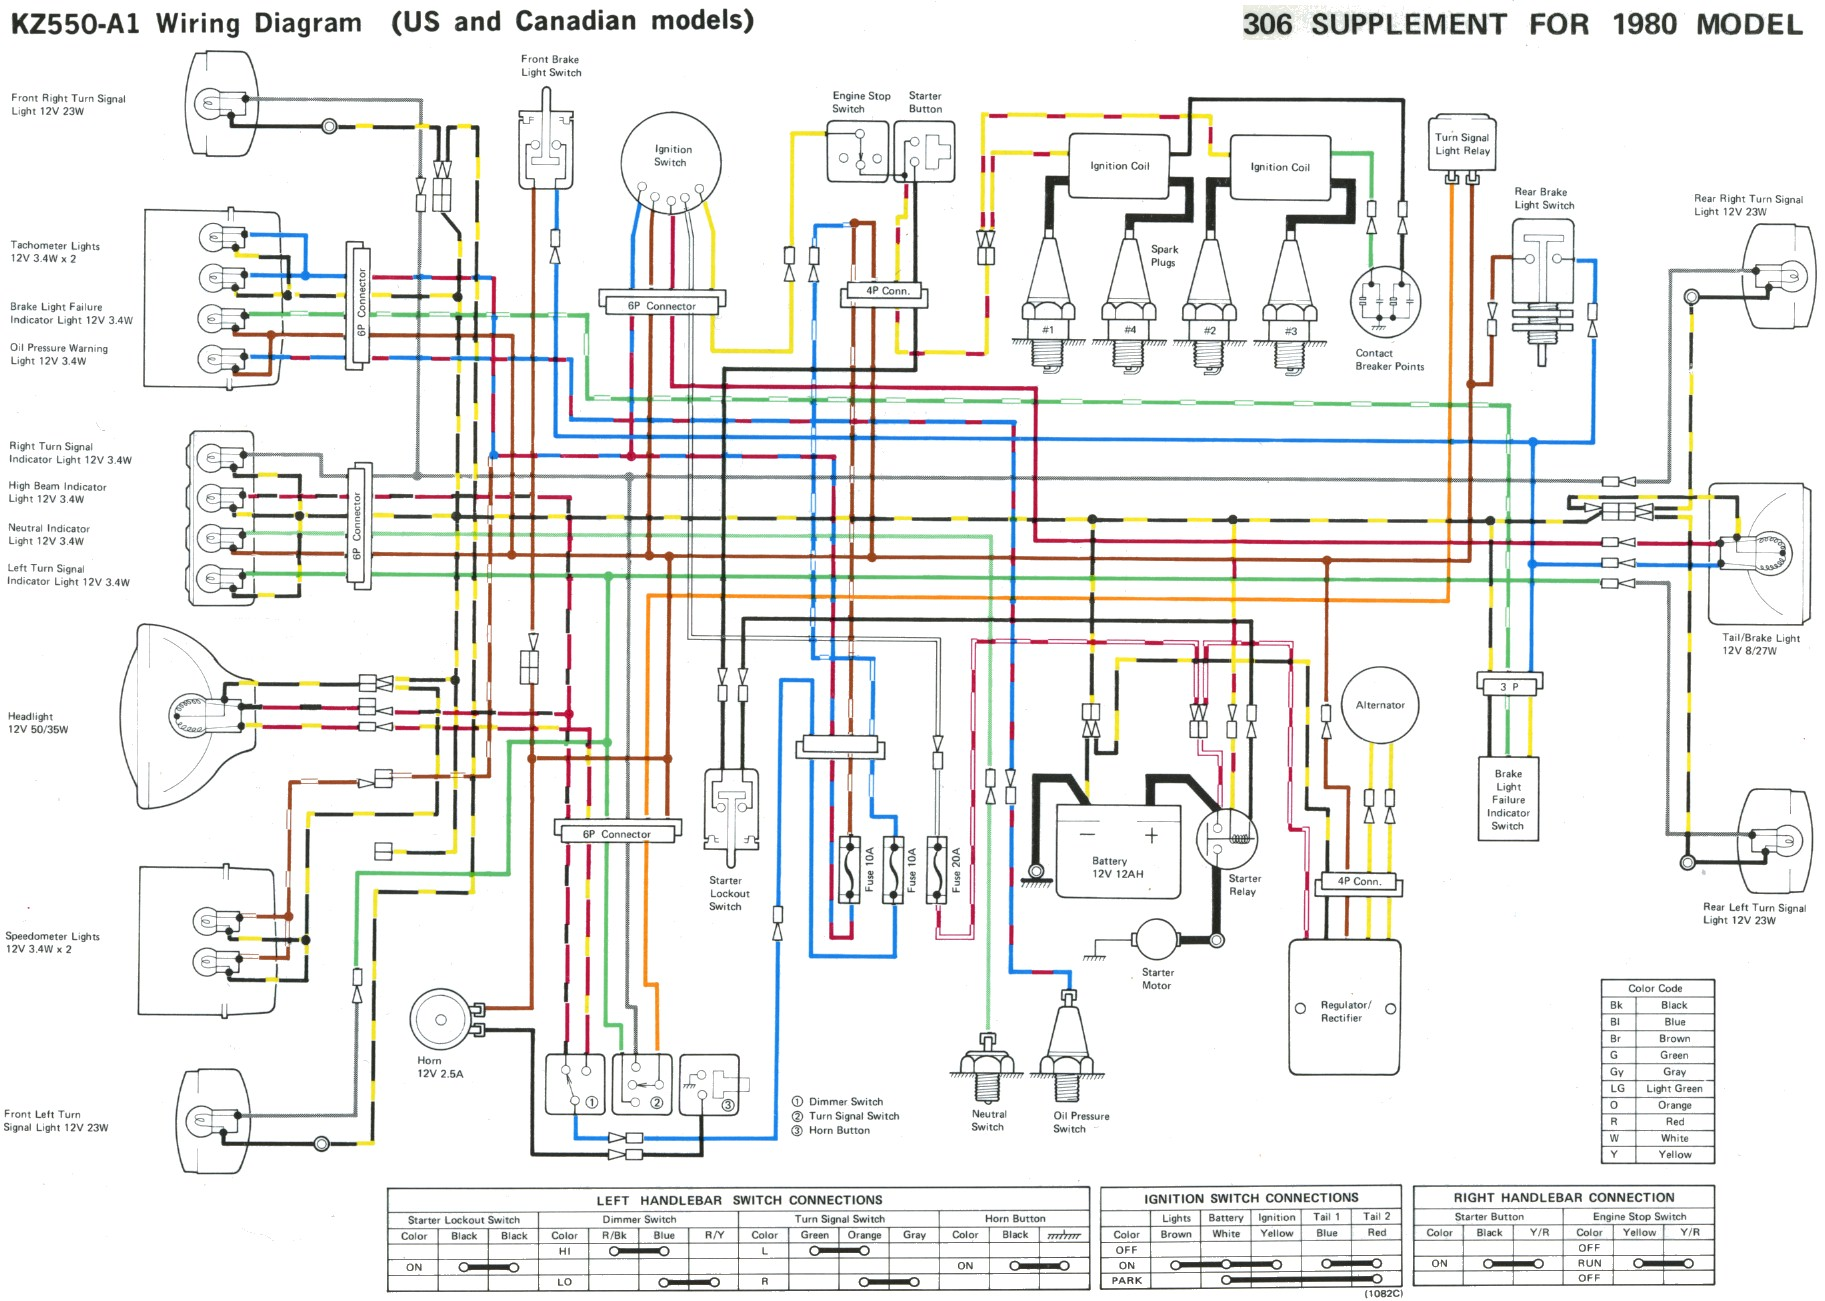 rb306kawKz550A1_UsCan some kz 400 500 550 wire diagrams kz550 wiring diagram at edmiracle.co